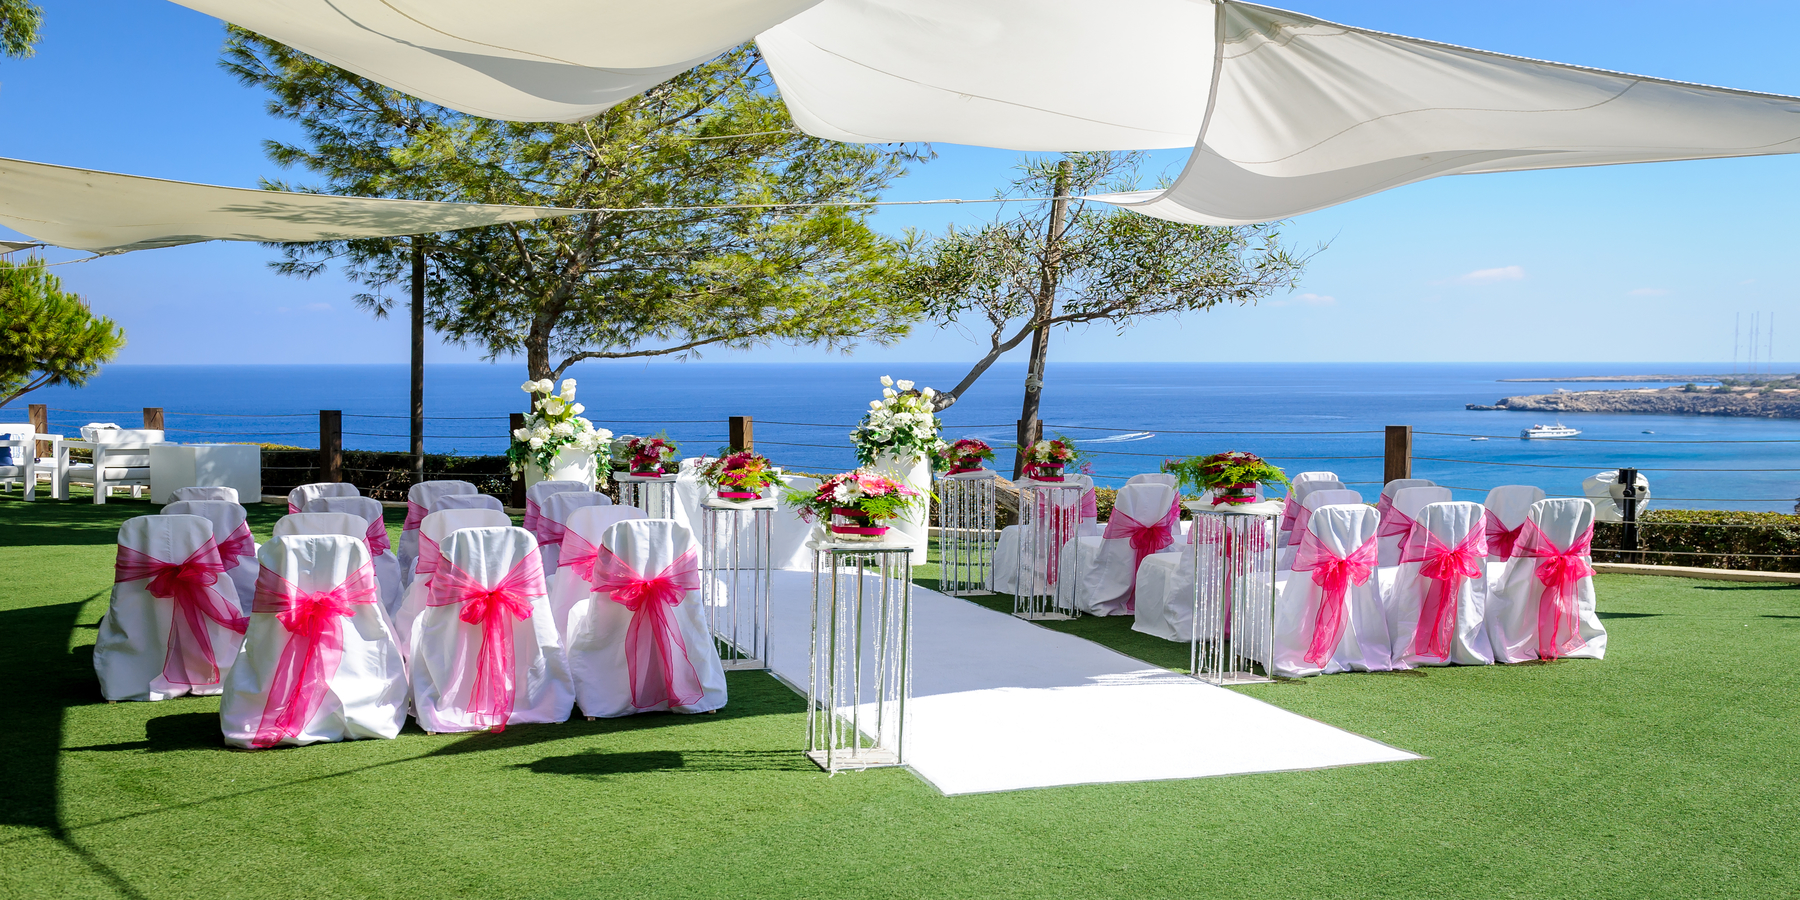 Cliff side wedding ceremony